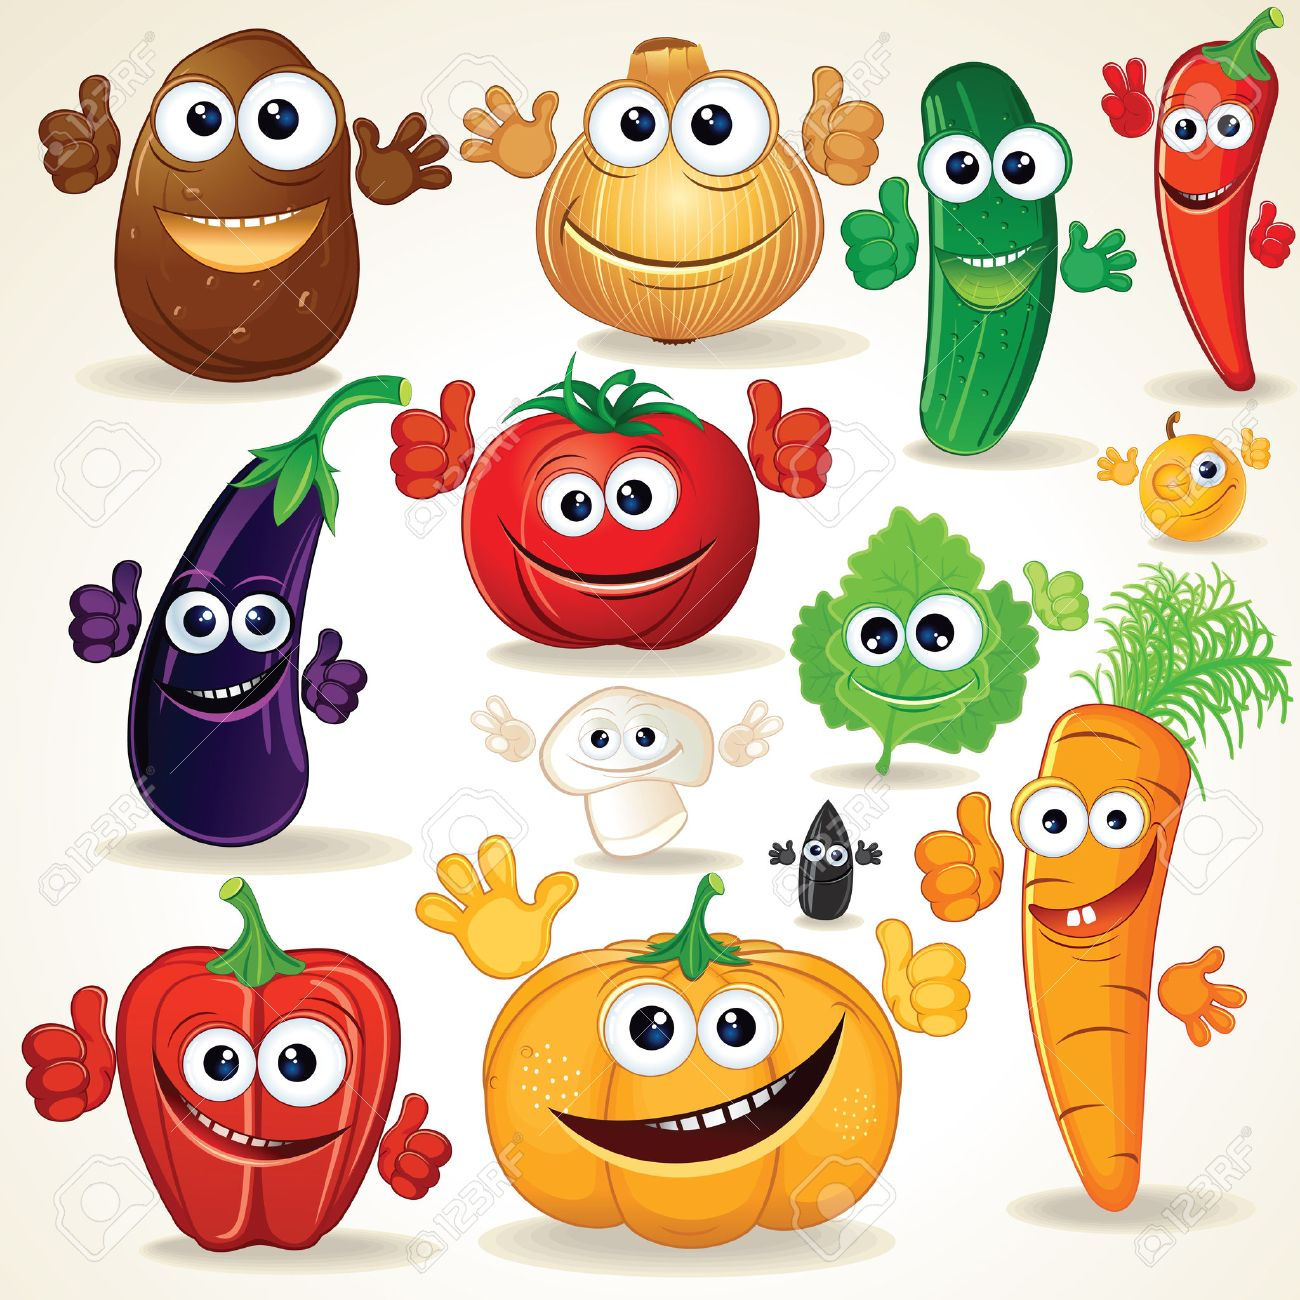 Fruit Vegetables Clip Art Clip Art Cartoon Vegetable